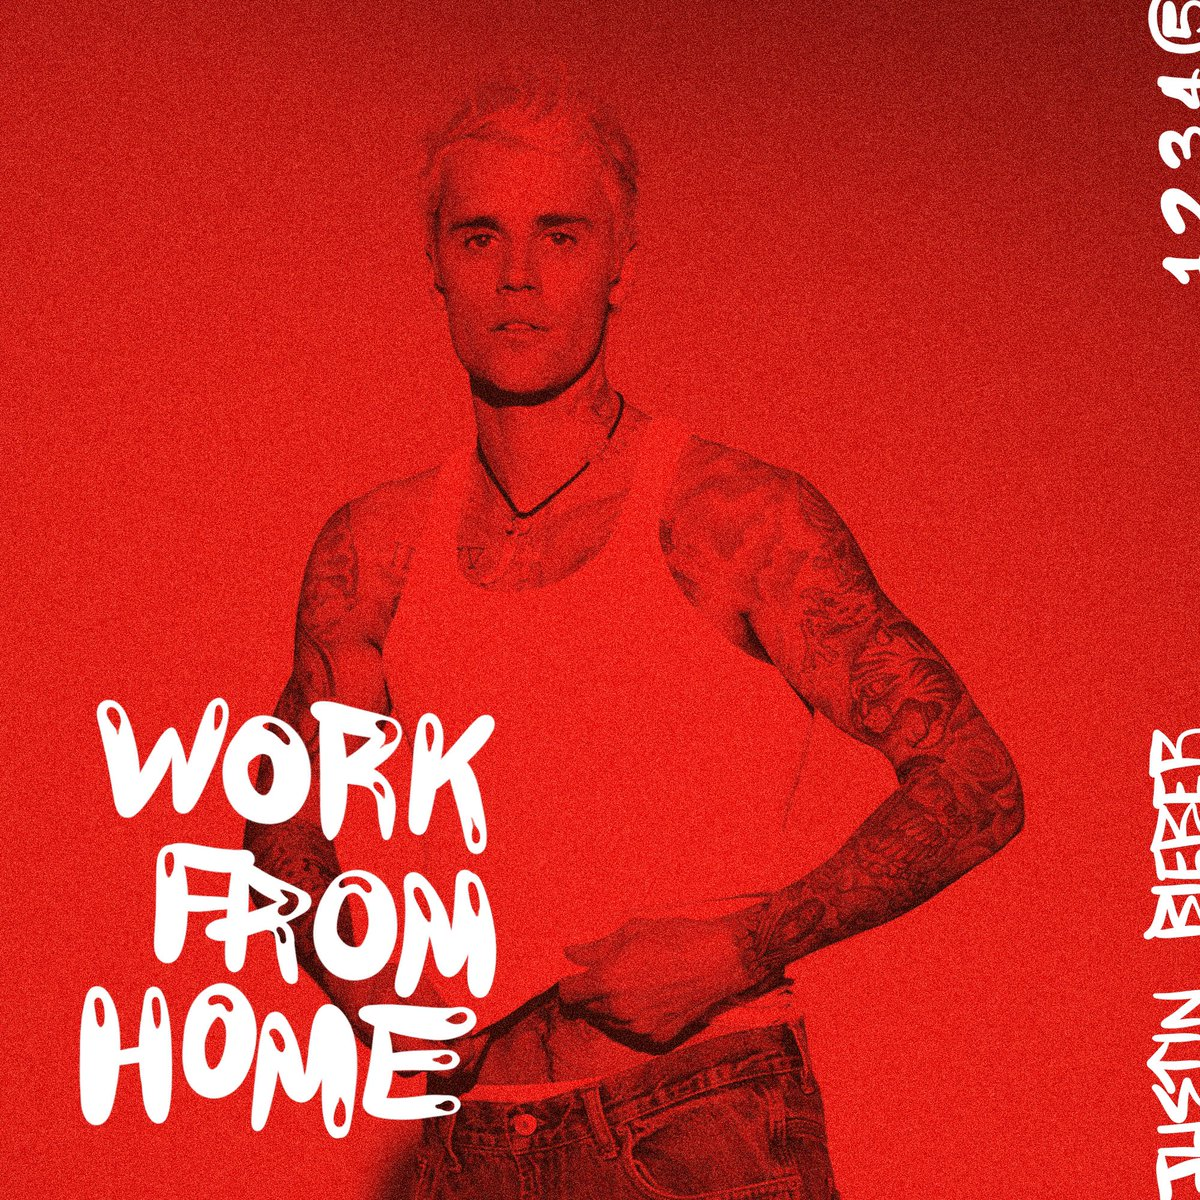 https://justinbieber.lnk.to/WorkFromHomepic.twitter.com/nGmsT36Tfc